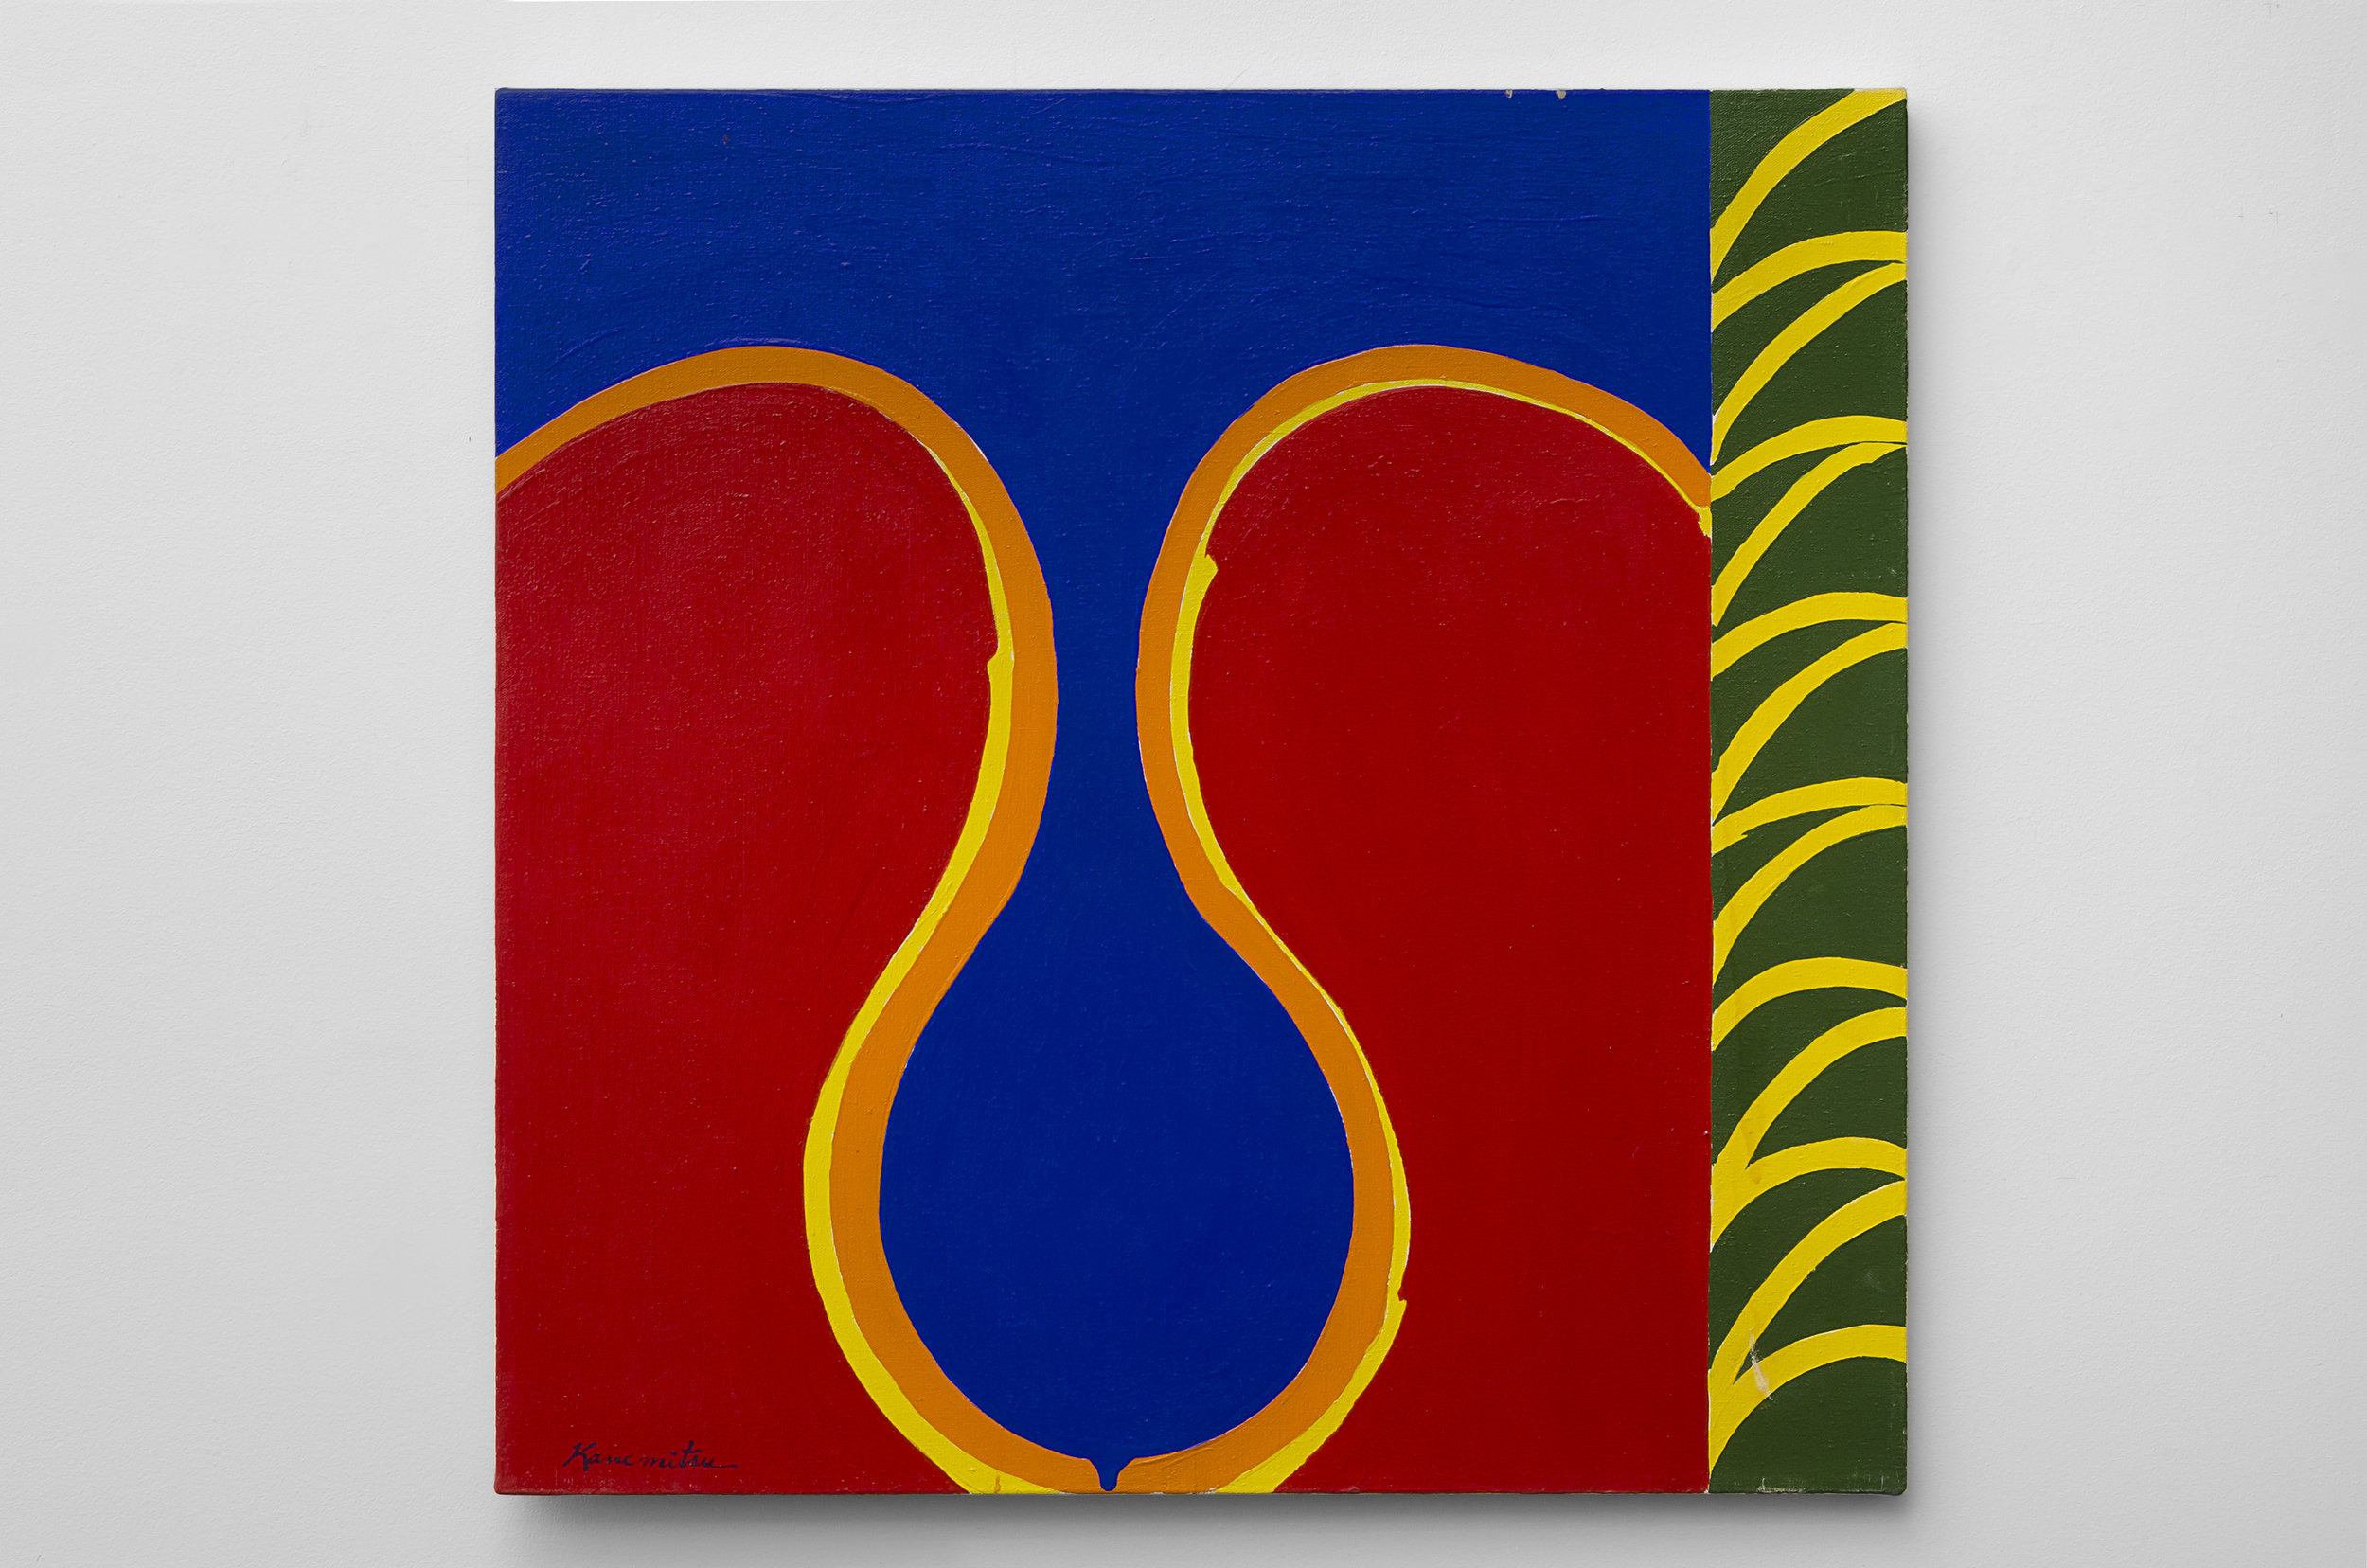 Hidalgo #11 , 1965  acrylic on canvas 20 x 20 inches; 50.8 x 50.8 centimeters  $10,000